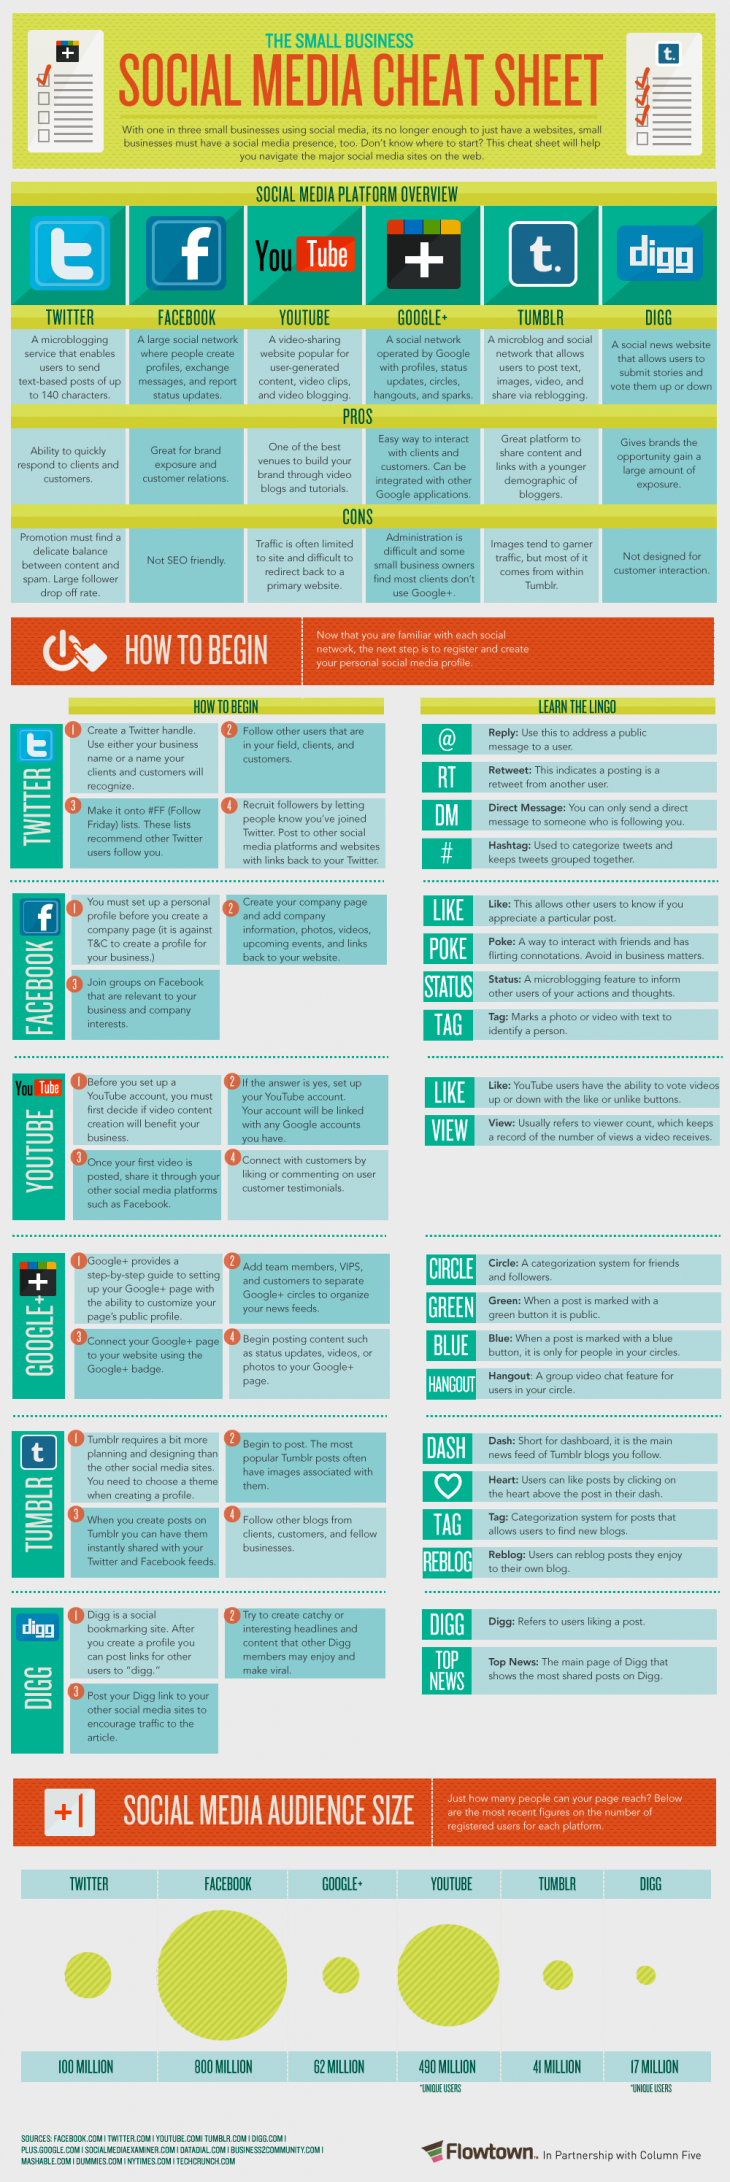 pros-and-cons-of-social-media